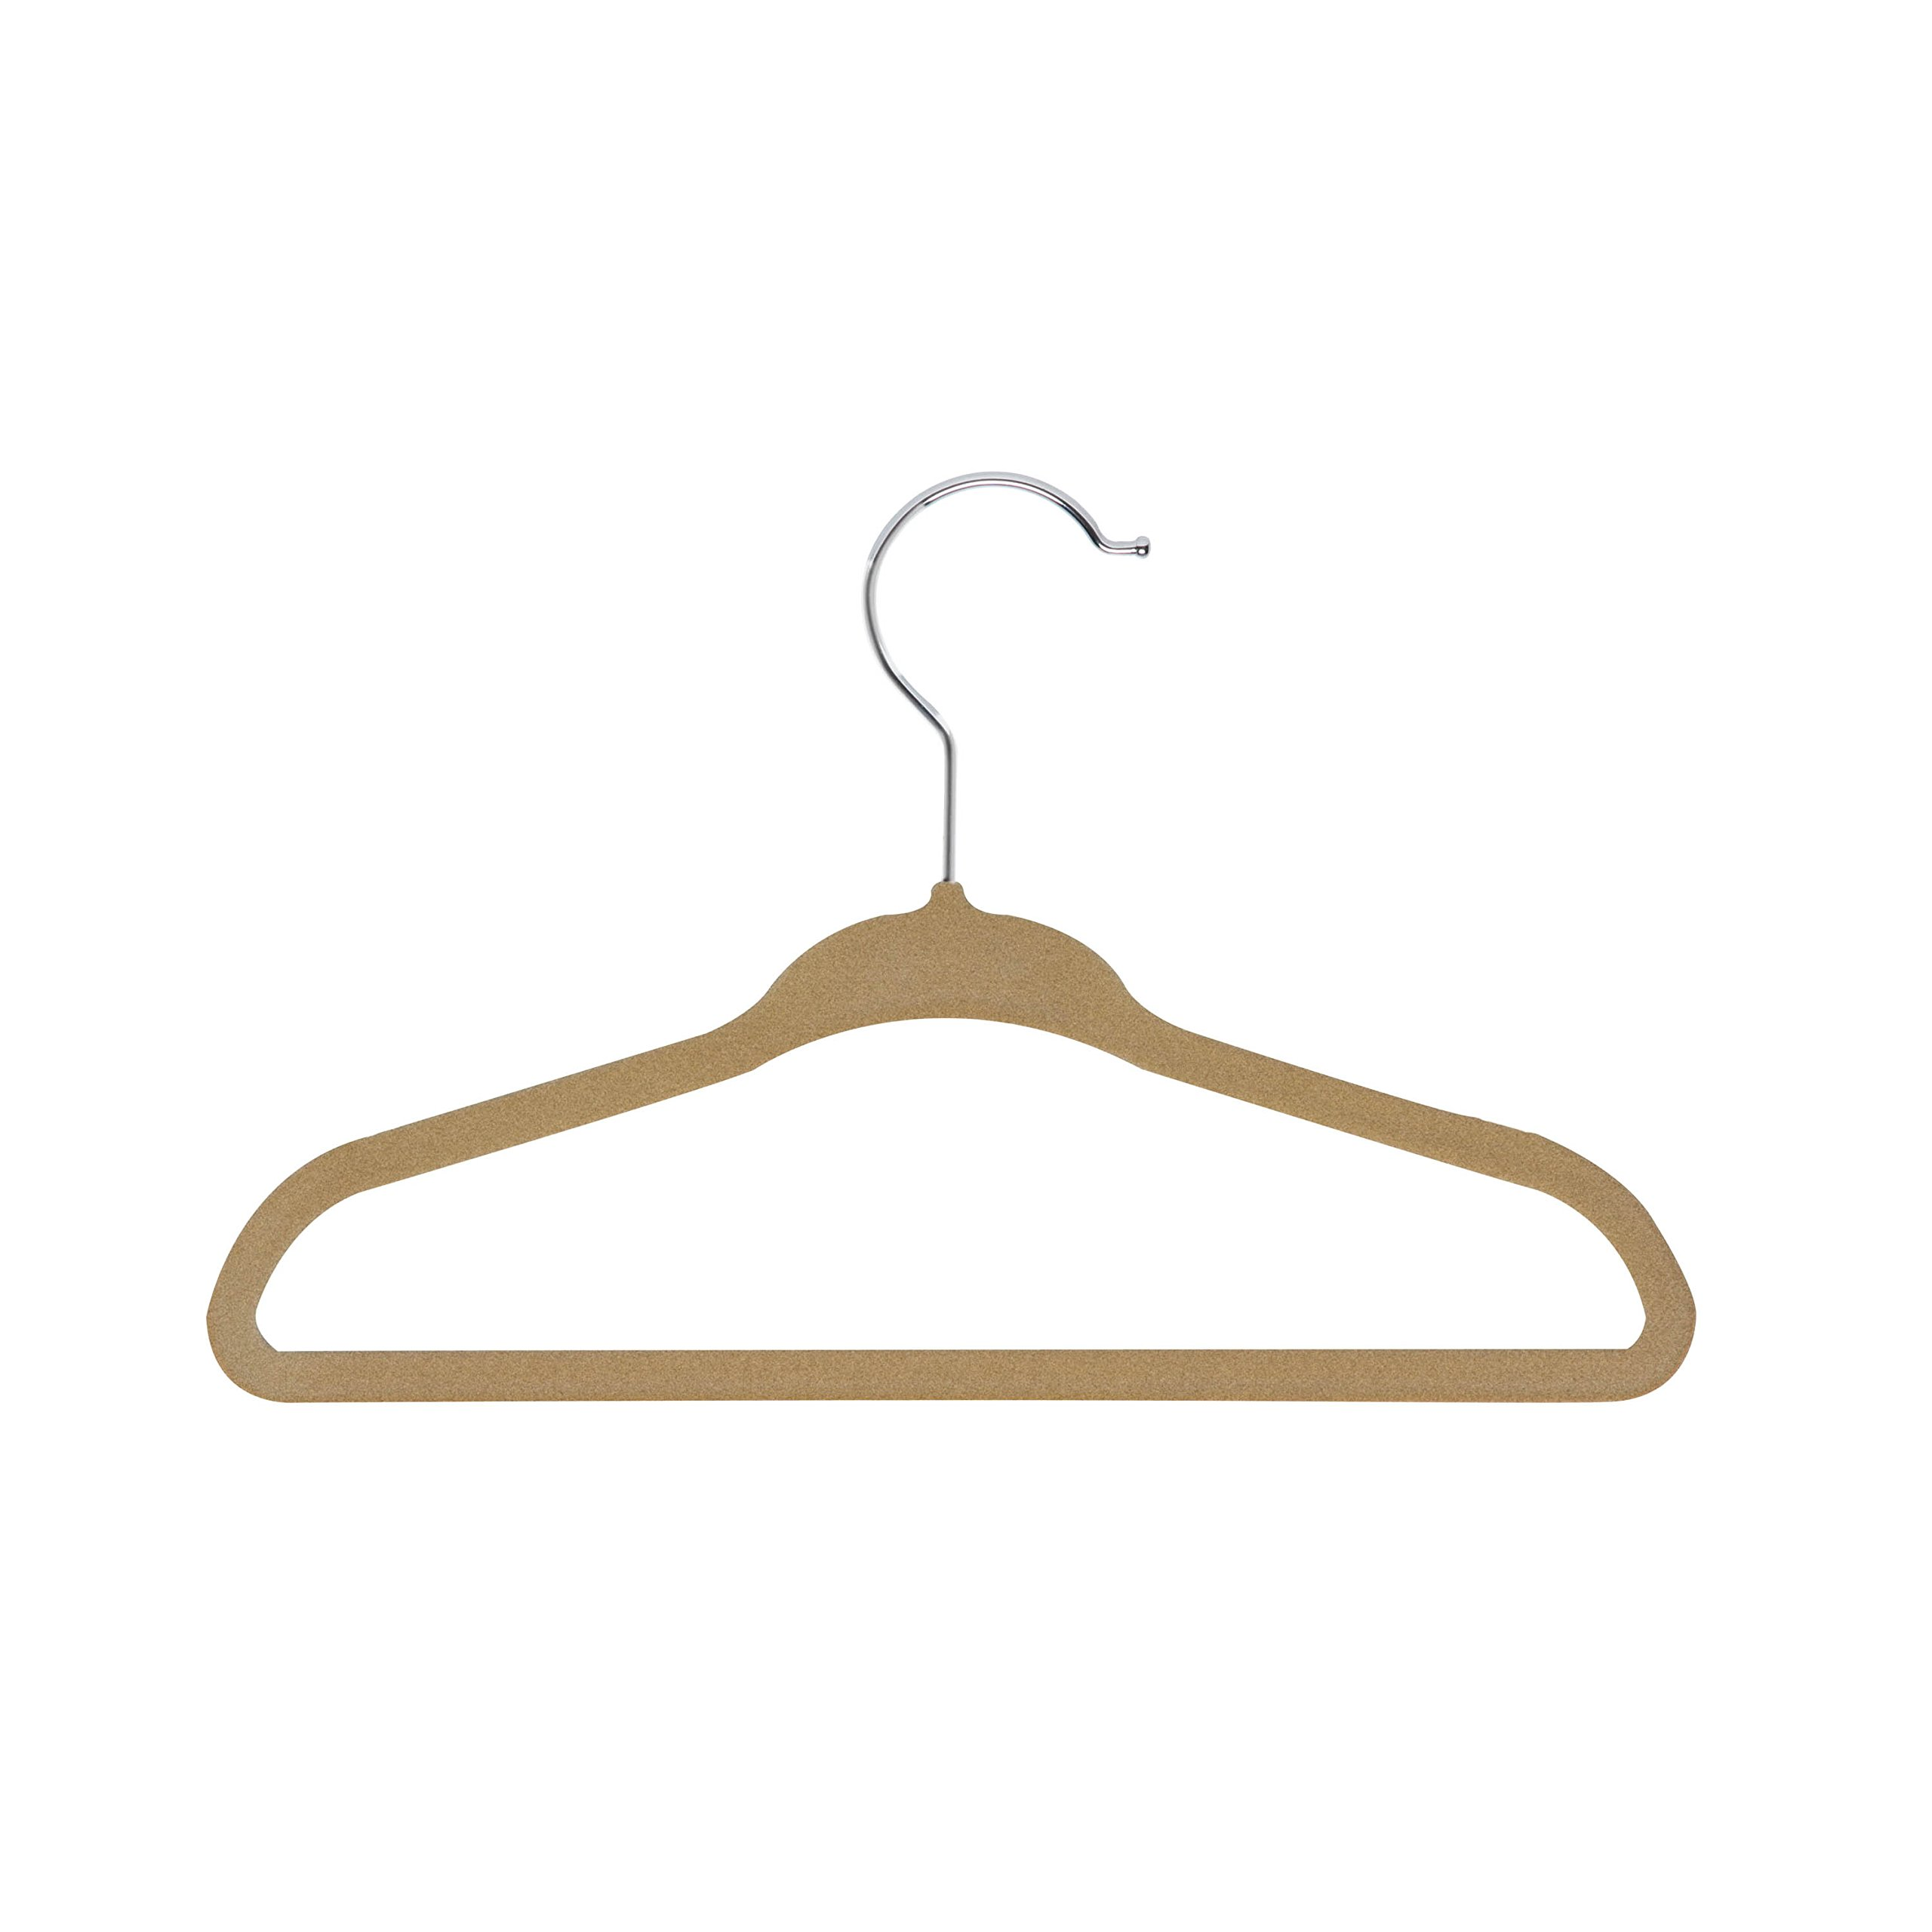 HoneyCanDo 60-Pack Kids Velvet Touch Suit Hangers, tan